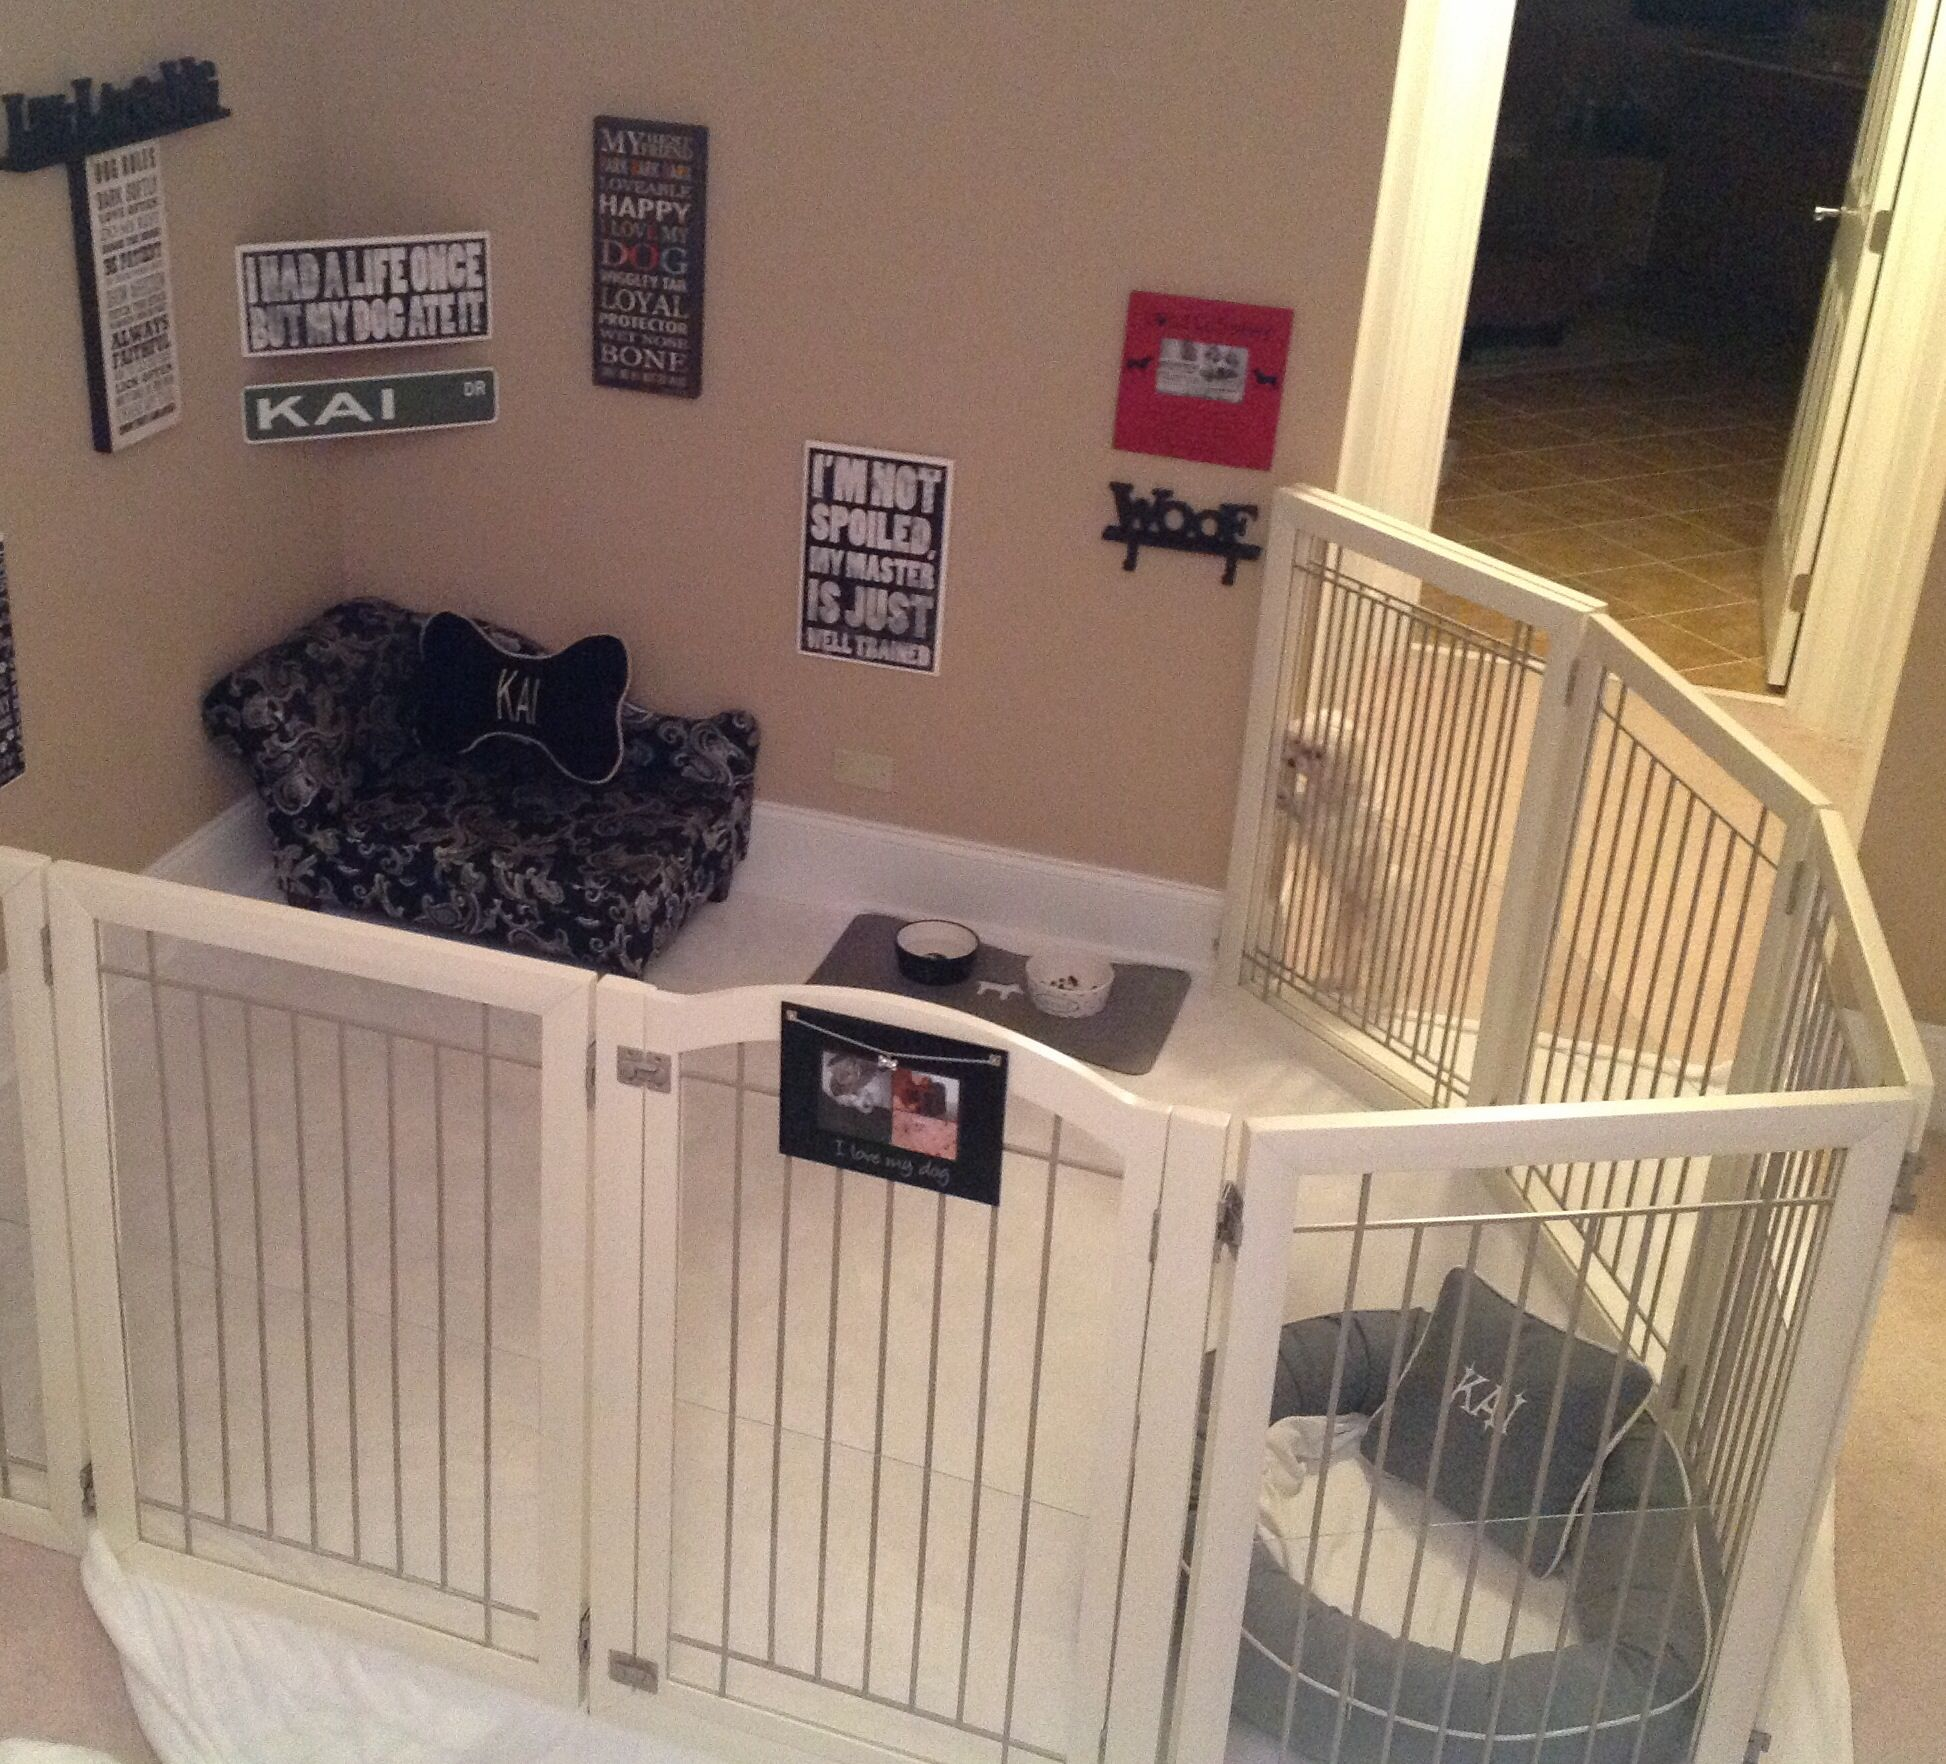 Kai 39 s dog room maltese dog room pinterest dog rooms dog and room - Best dogs for small spaces pict ...